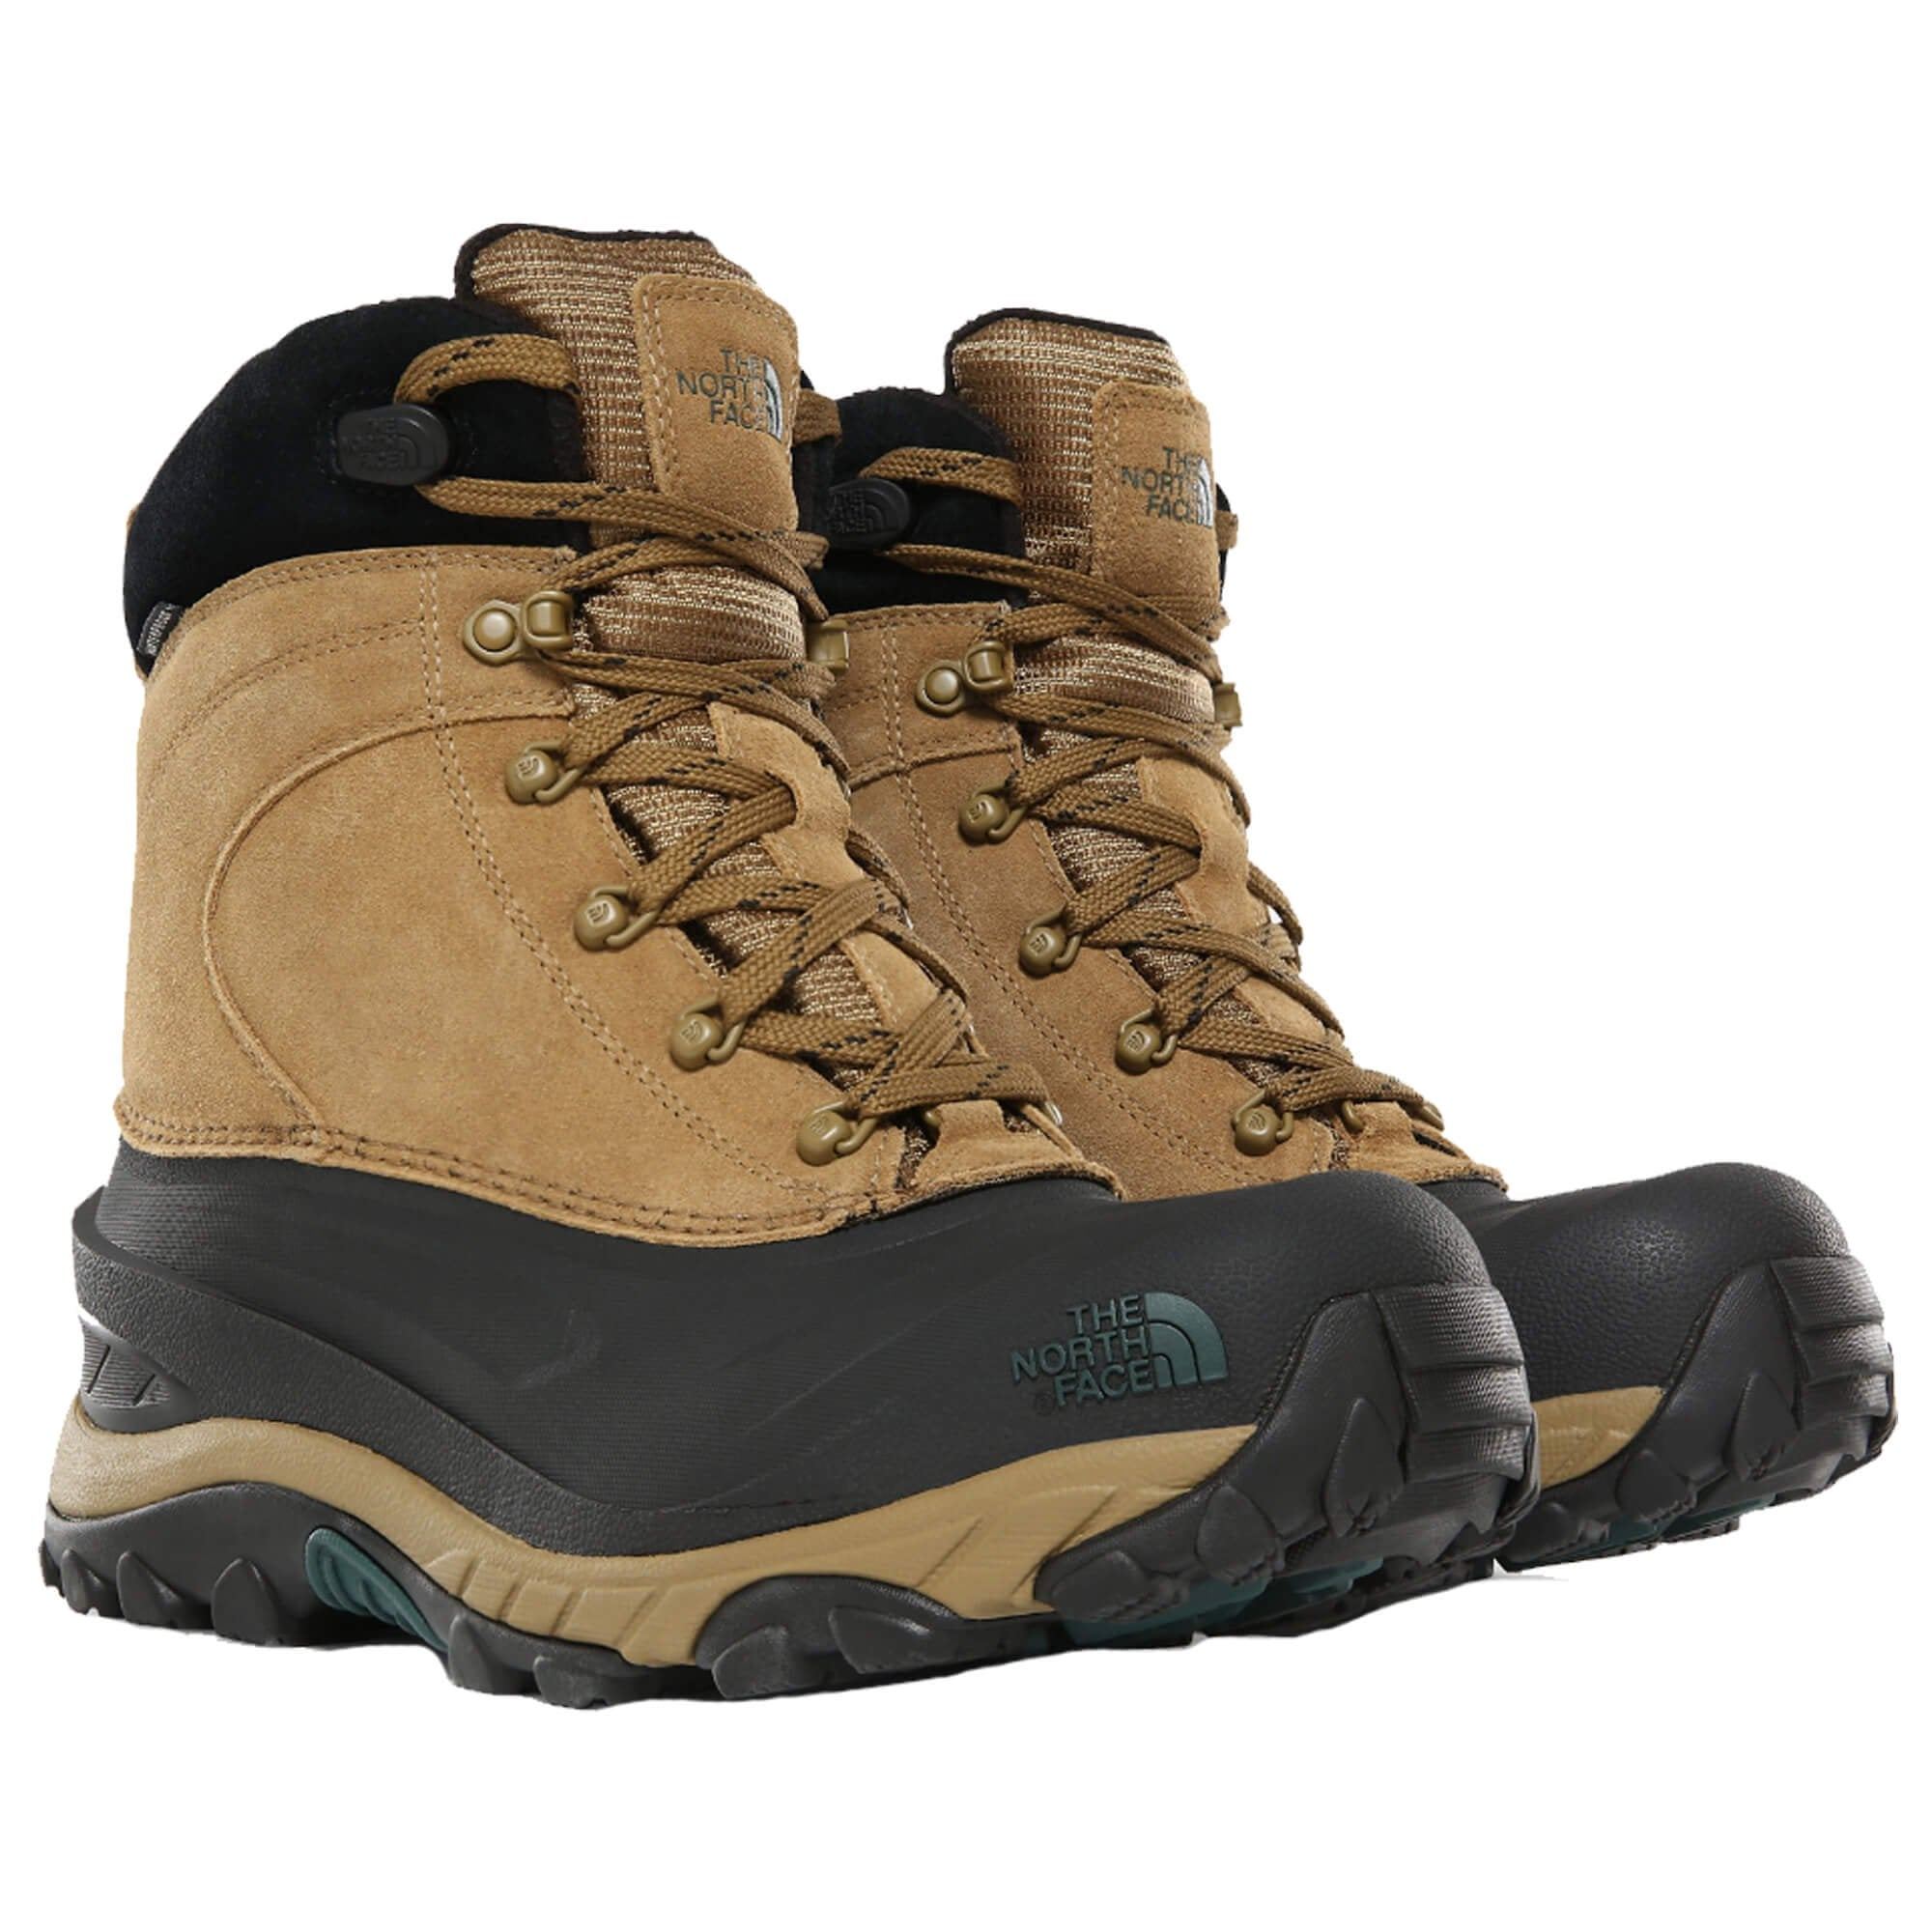 The North Face Mens Chilkat Iii Walking Boots Footwear From Gaynor Sports Uk